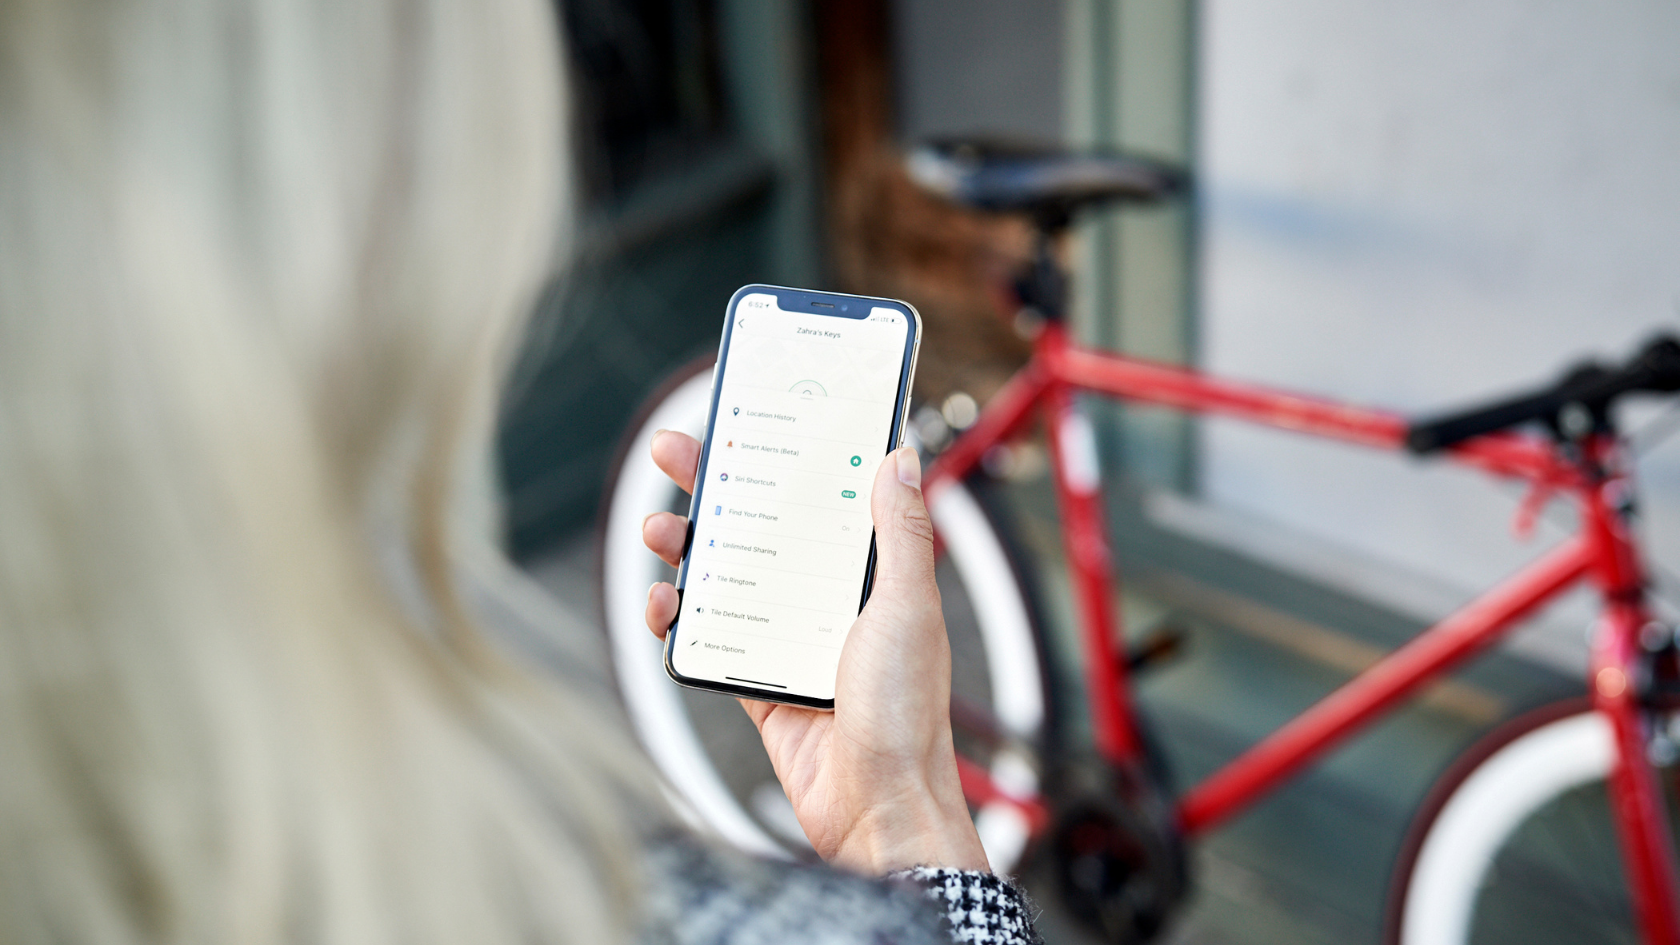 Tile bike tracker finds your lost bike with it's app